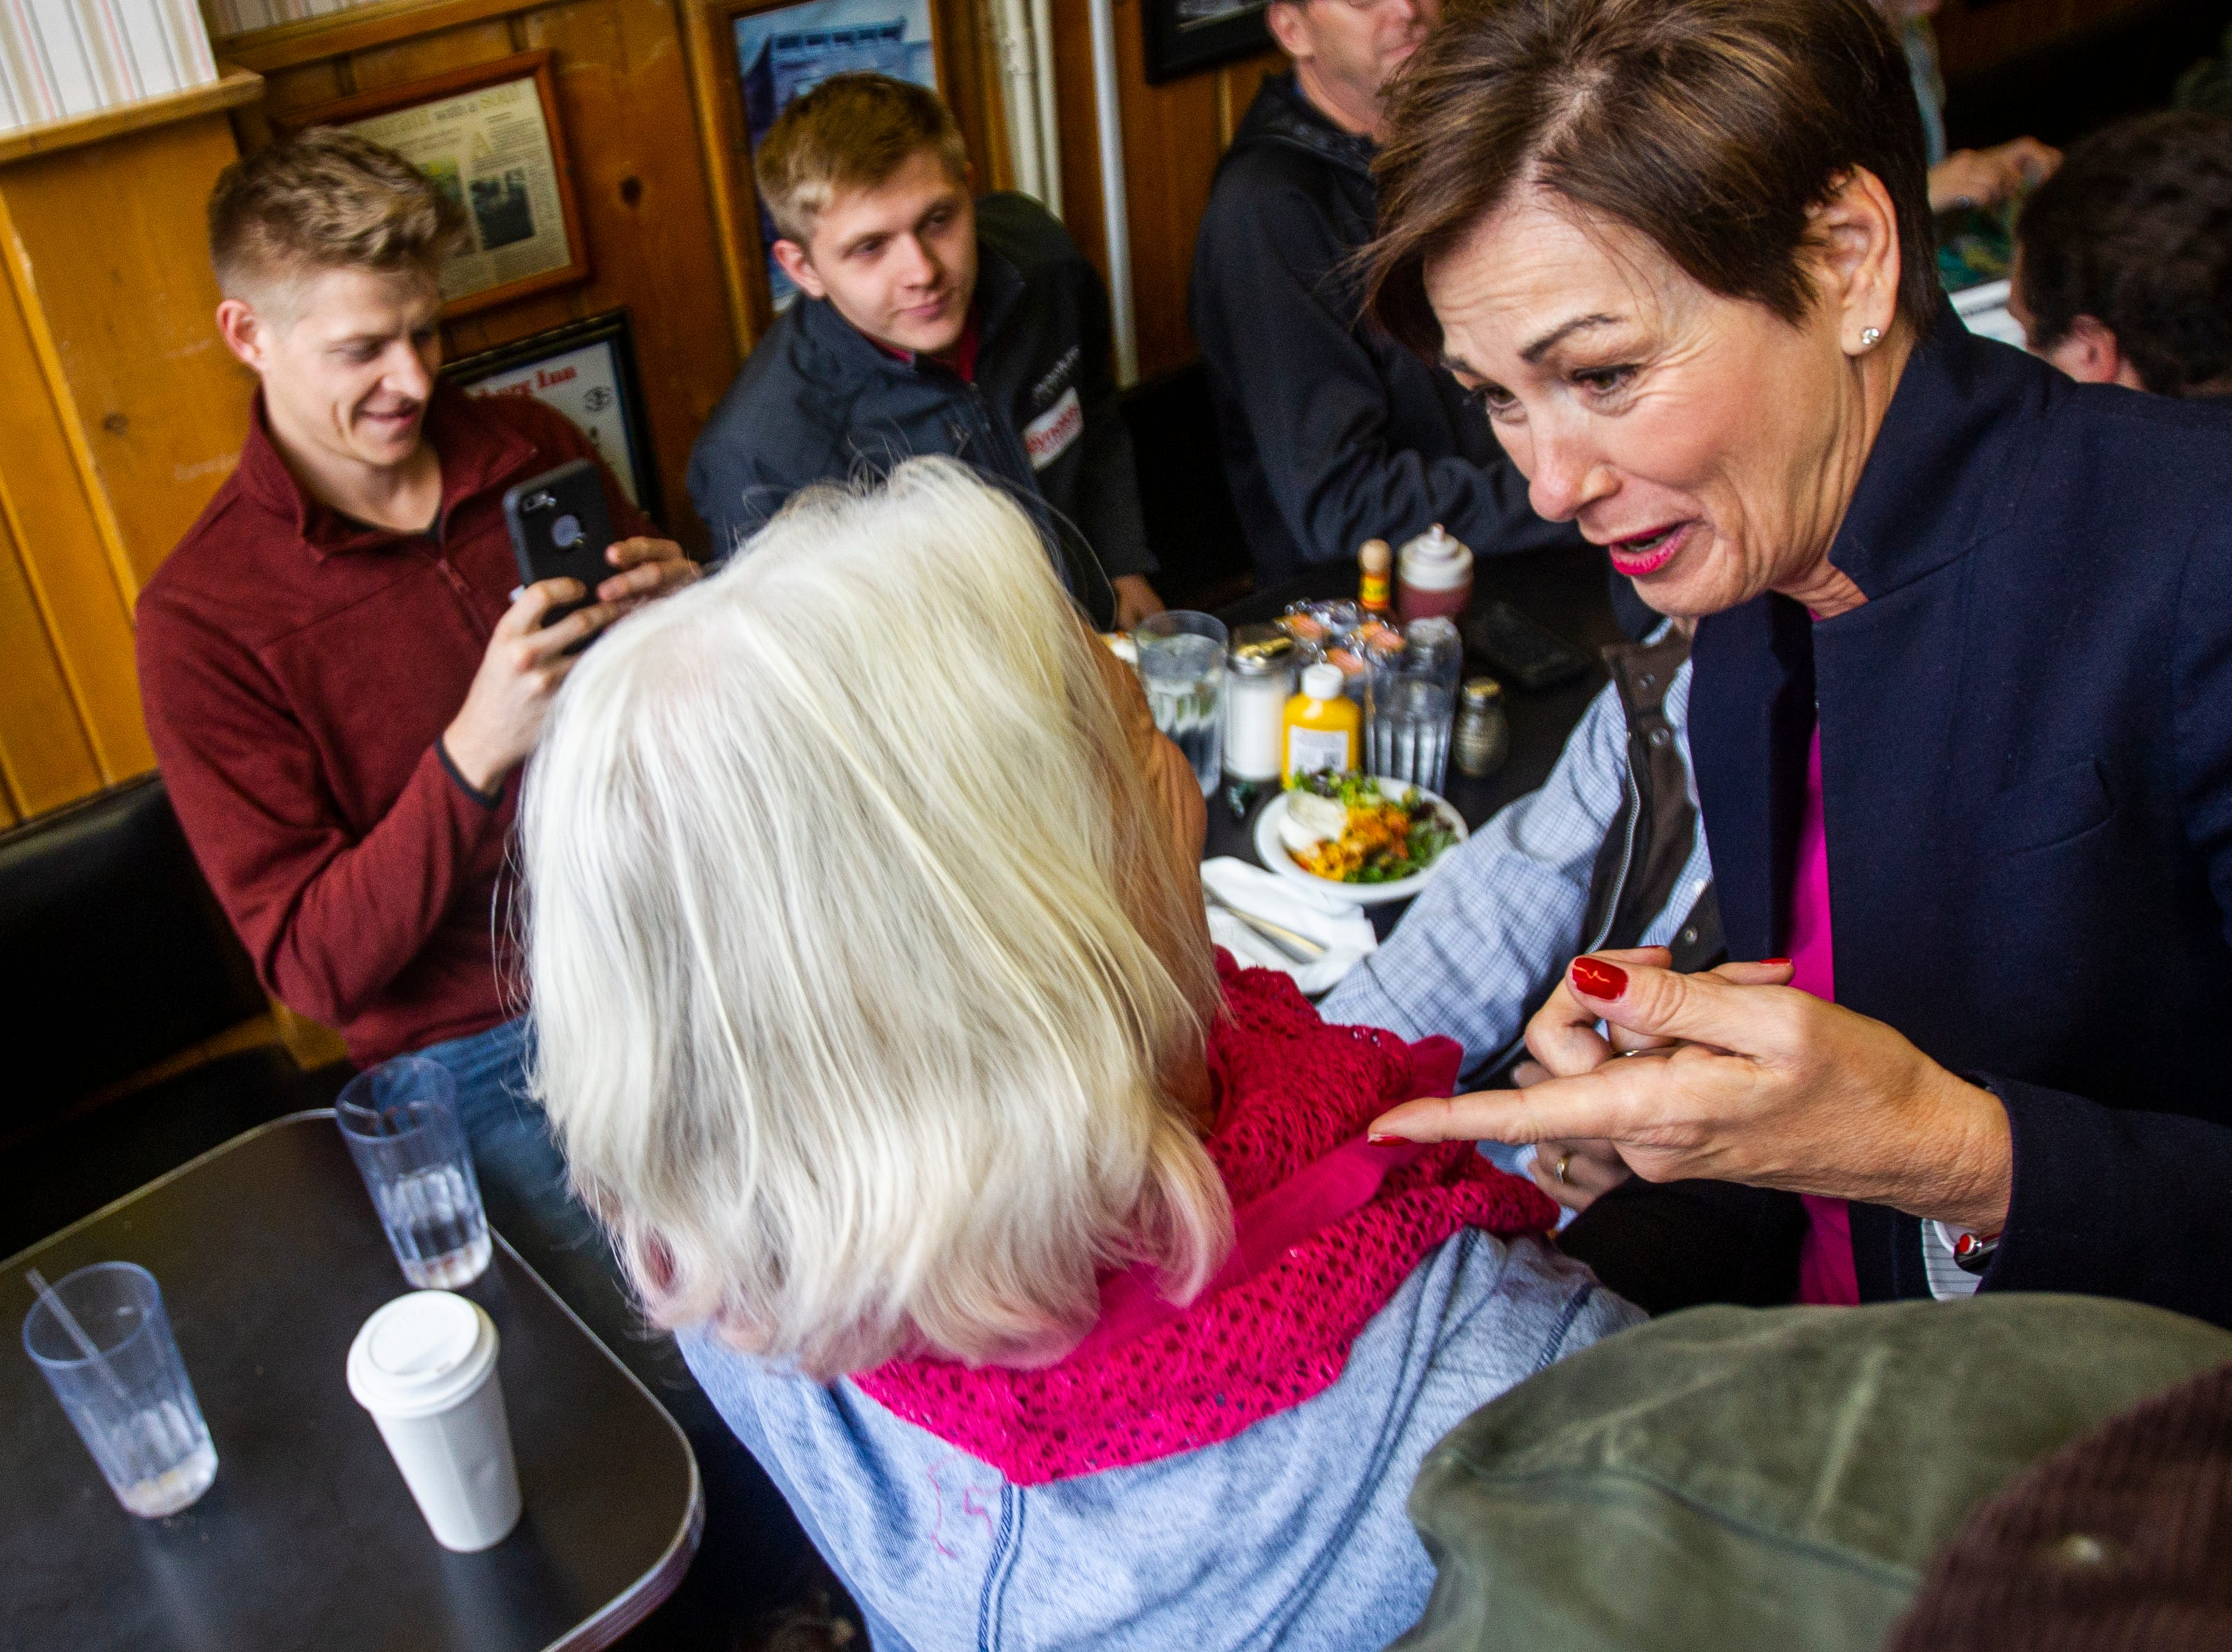 Iowa Gov. Kim Reynolds greets supporters during a campaign event on Thursday, Oct. 25, 2018, at Hamburg Inn No. 2 in Iowa City.